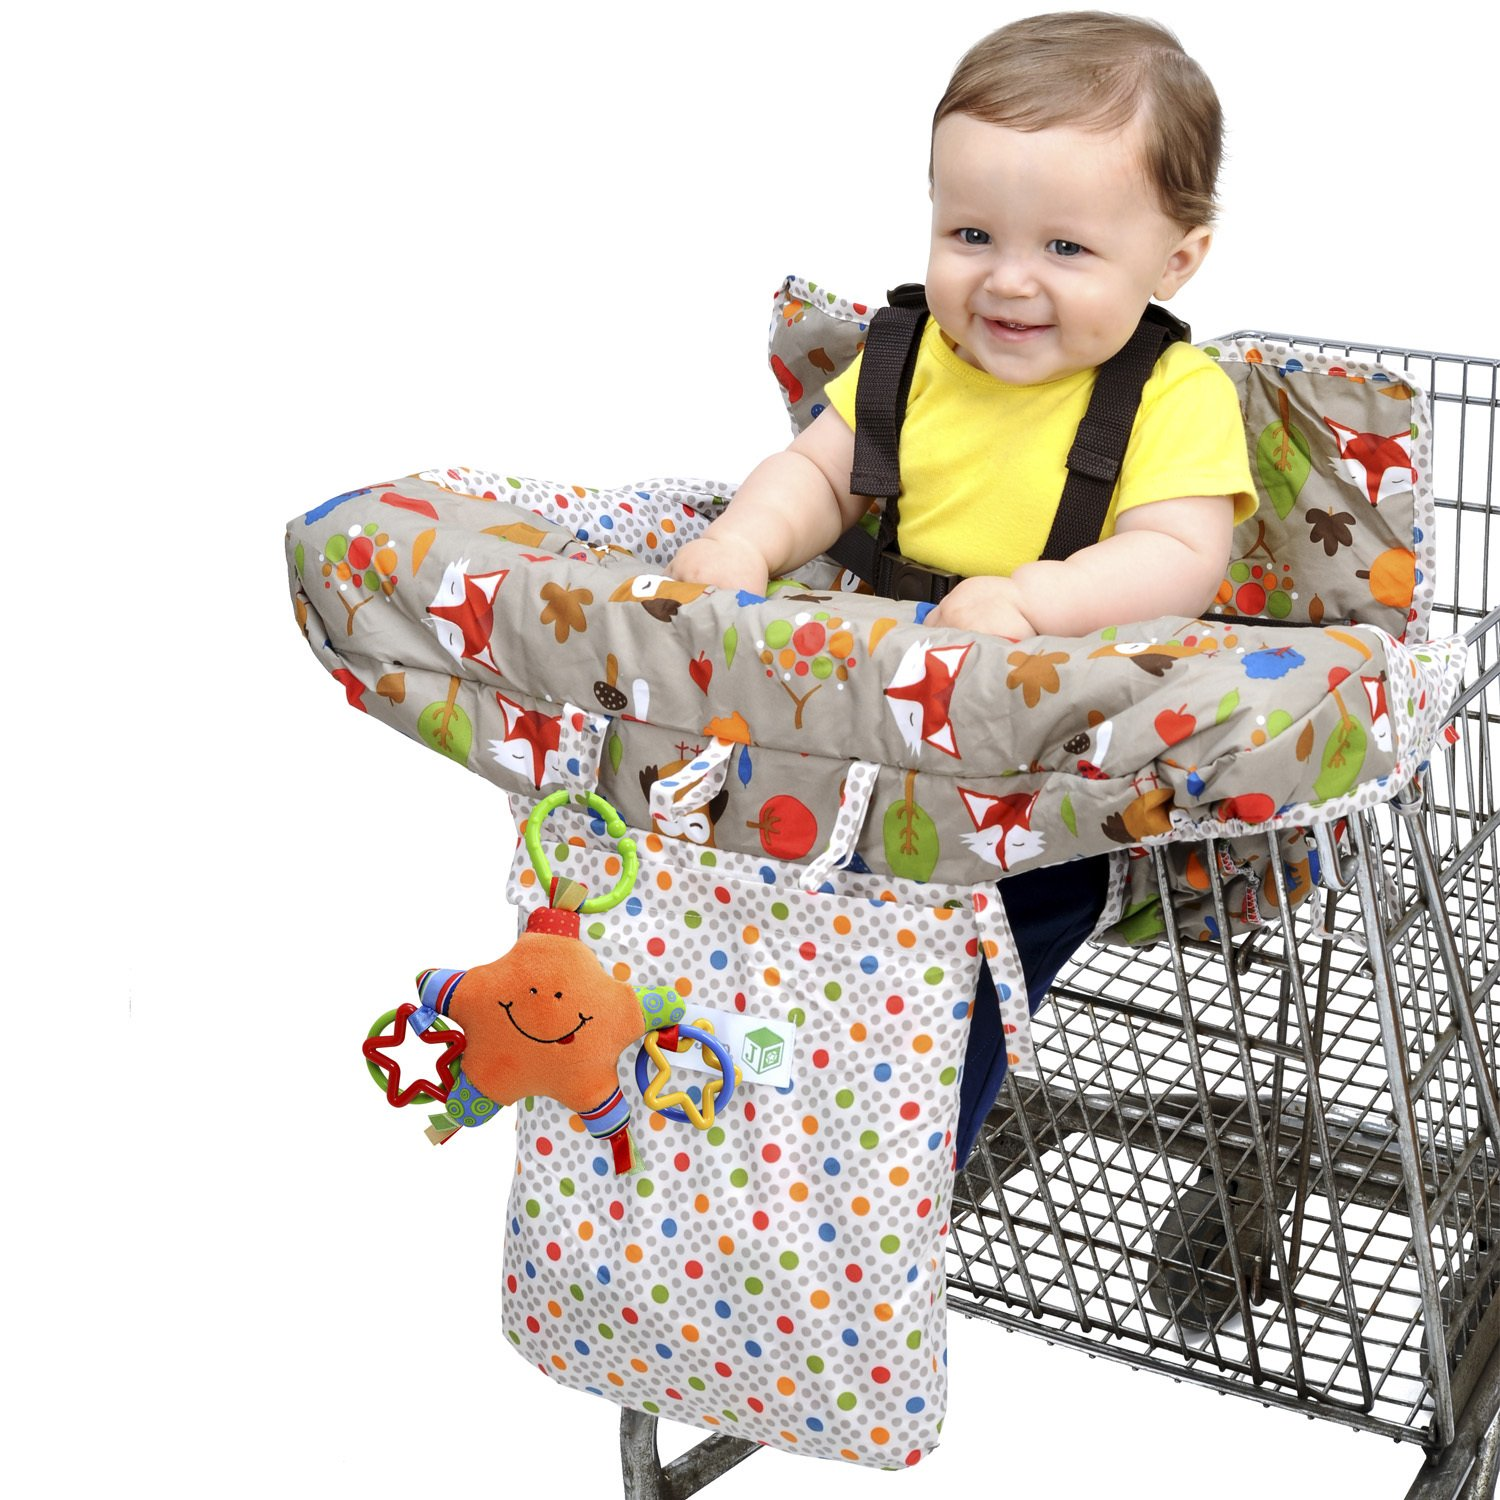 Jeep 2-in-1 Shopping Cart Cover High Chair Cover, High Chair Cushion, Baby Grocery Cart Cover, Infant High Chair Cover, Safety Harness, Cart Cover, Toddler, Universal Size, Essentials Pocket J is for Jeep 90259